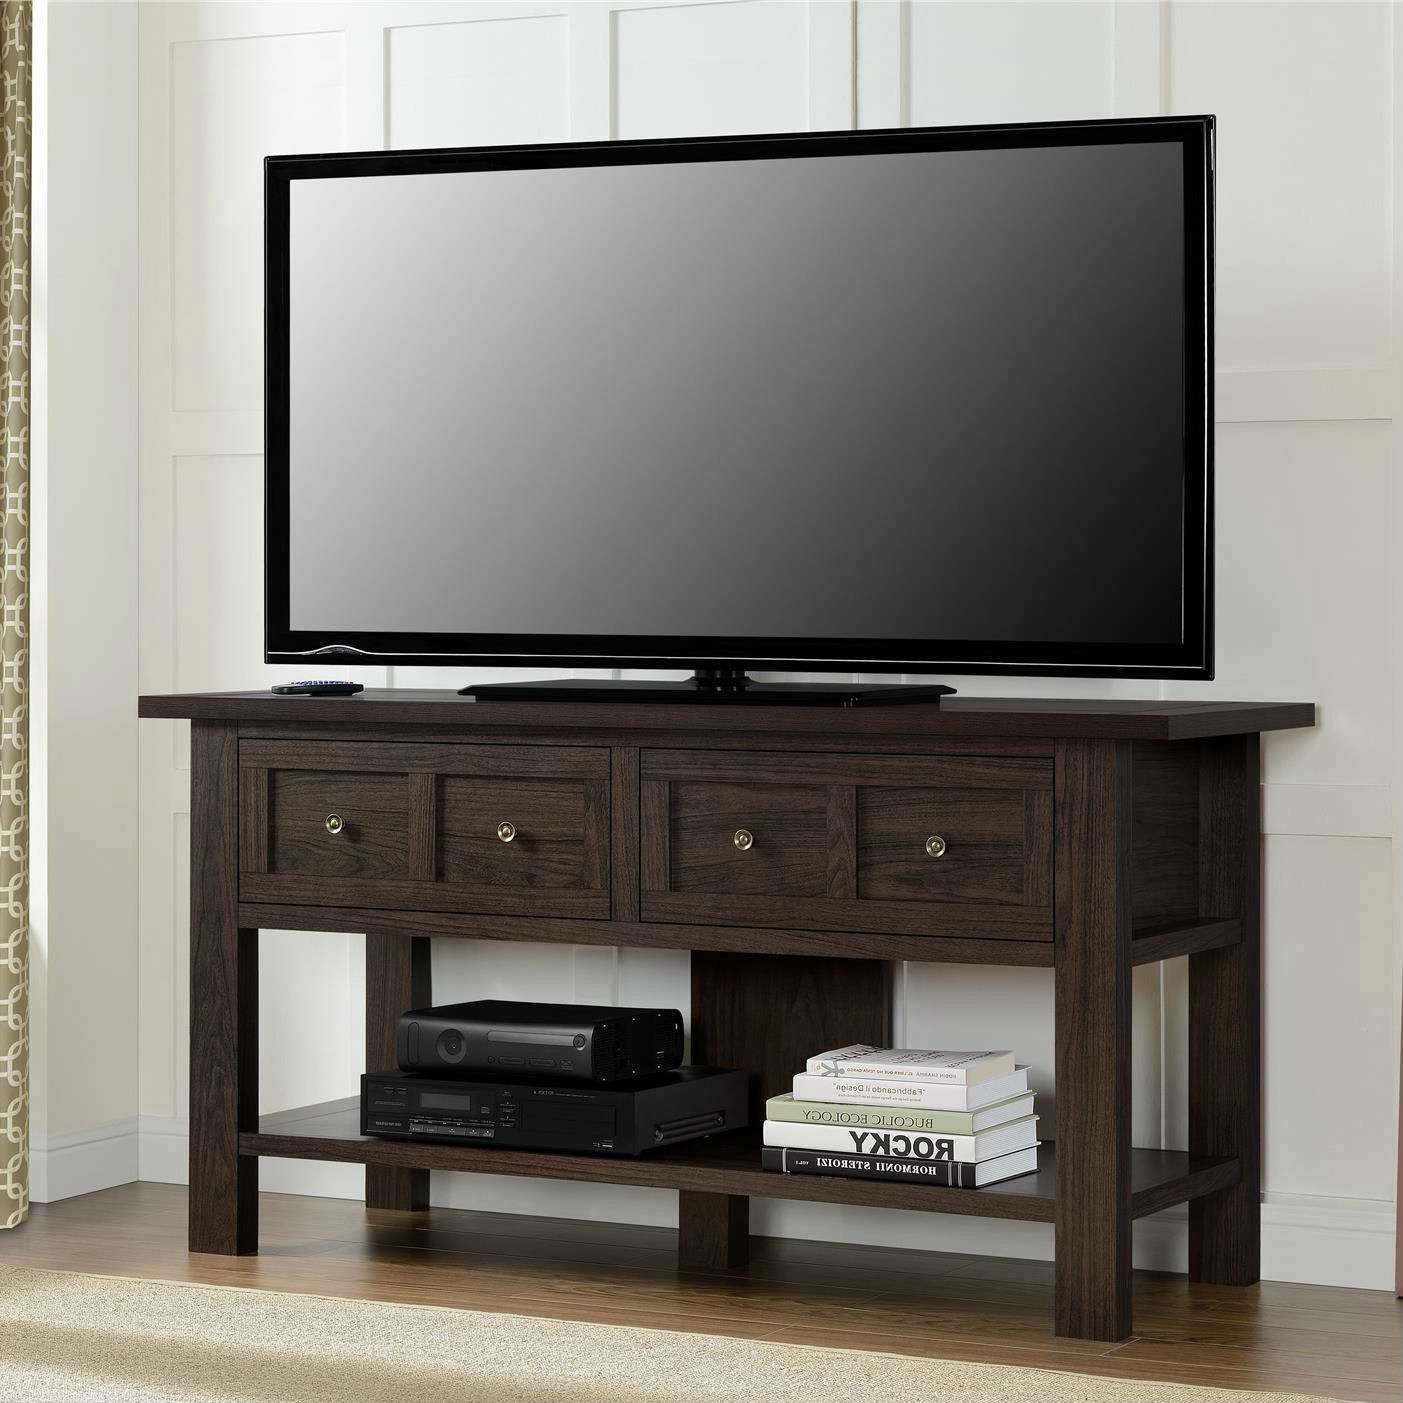 Classic 55inch TV Stand Versatile Accent Console Table with 2